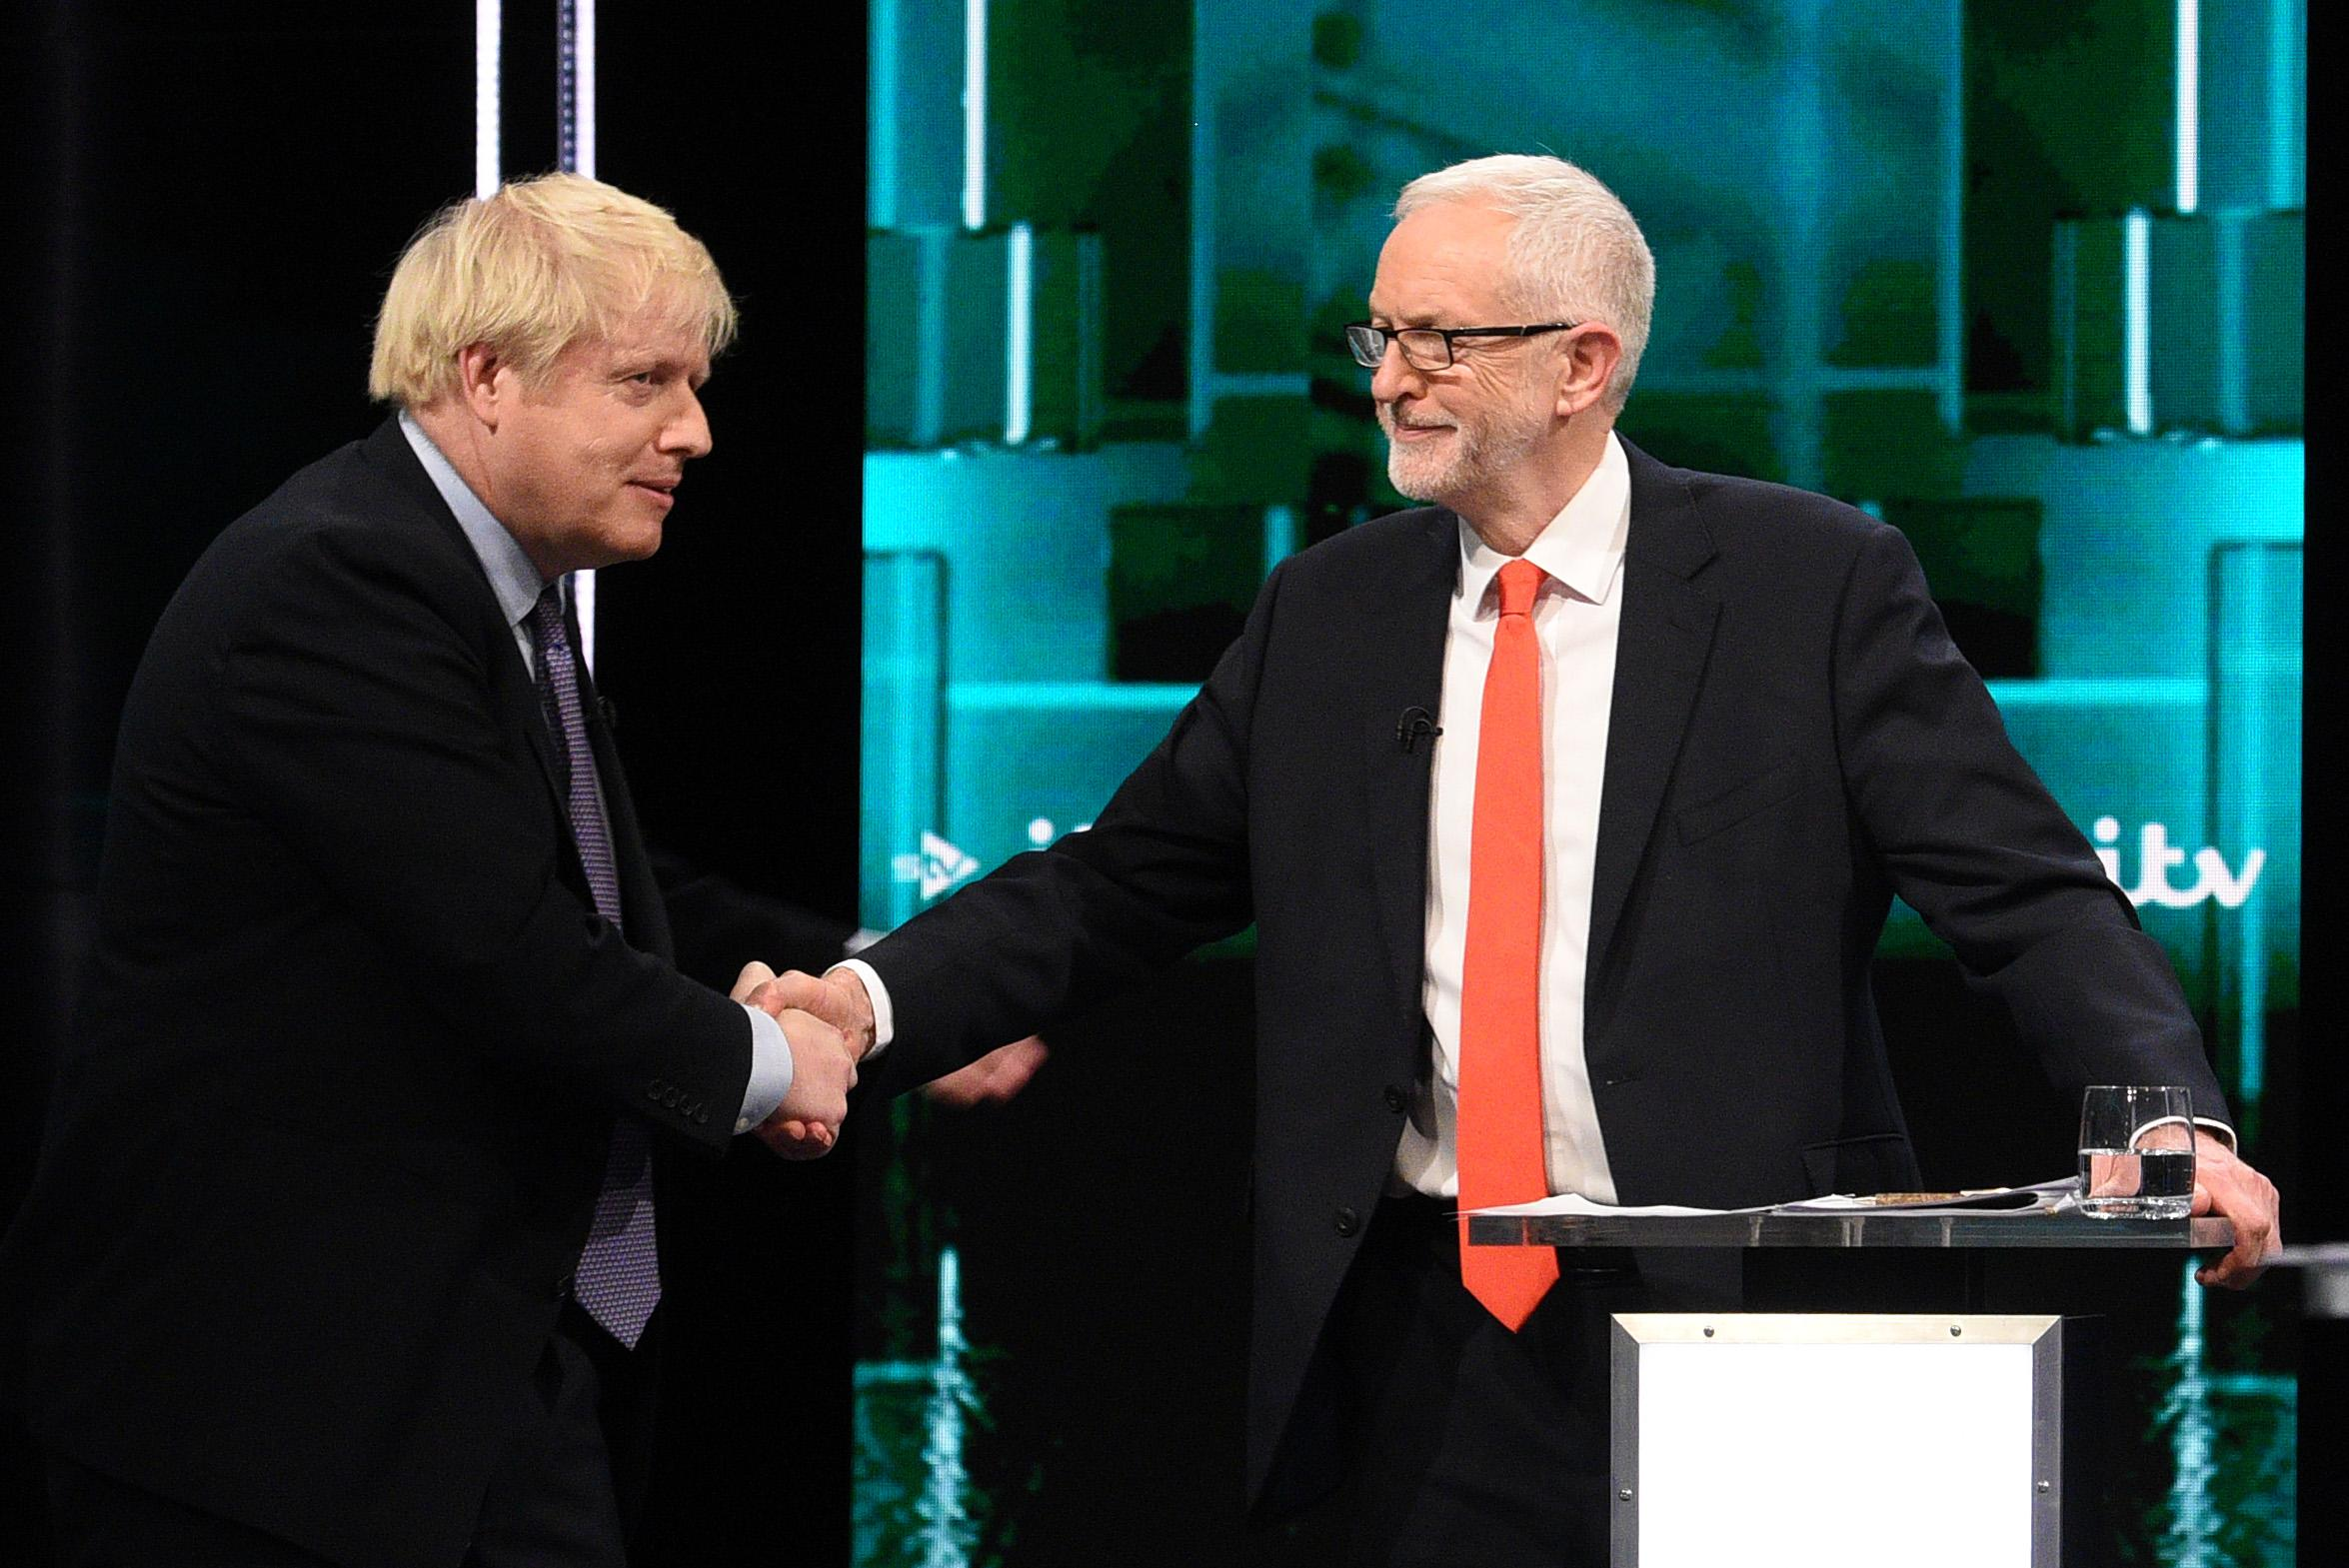 Here's what the audience really thought of Boris Johnson after the leaders' debate